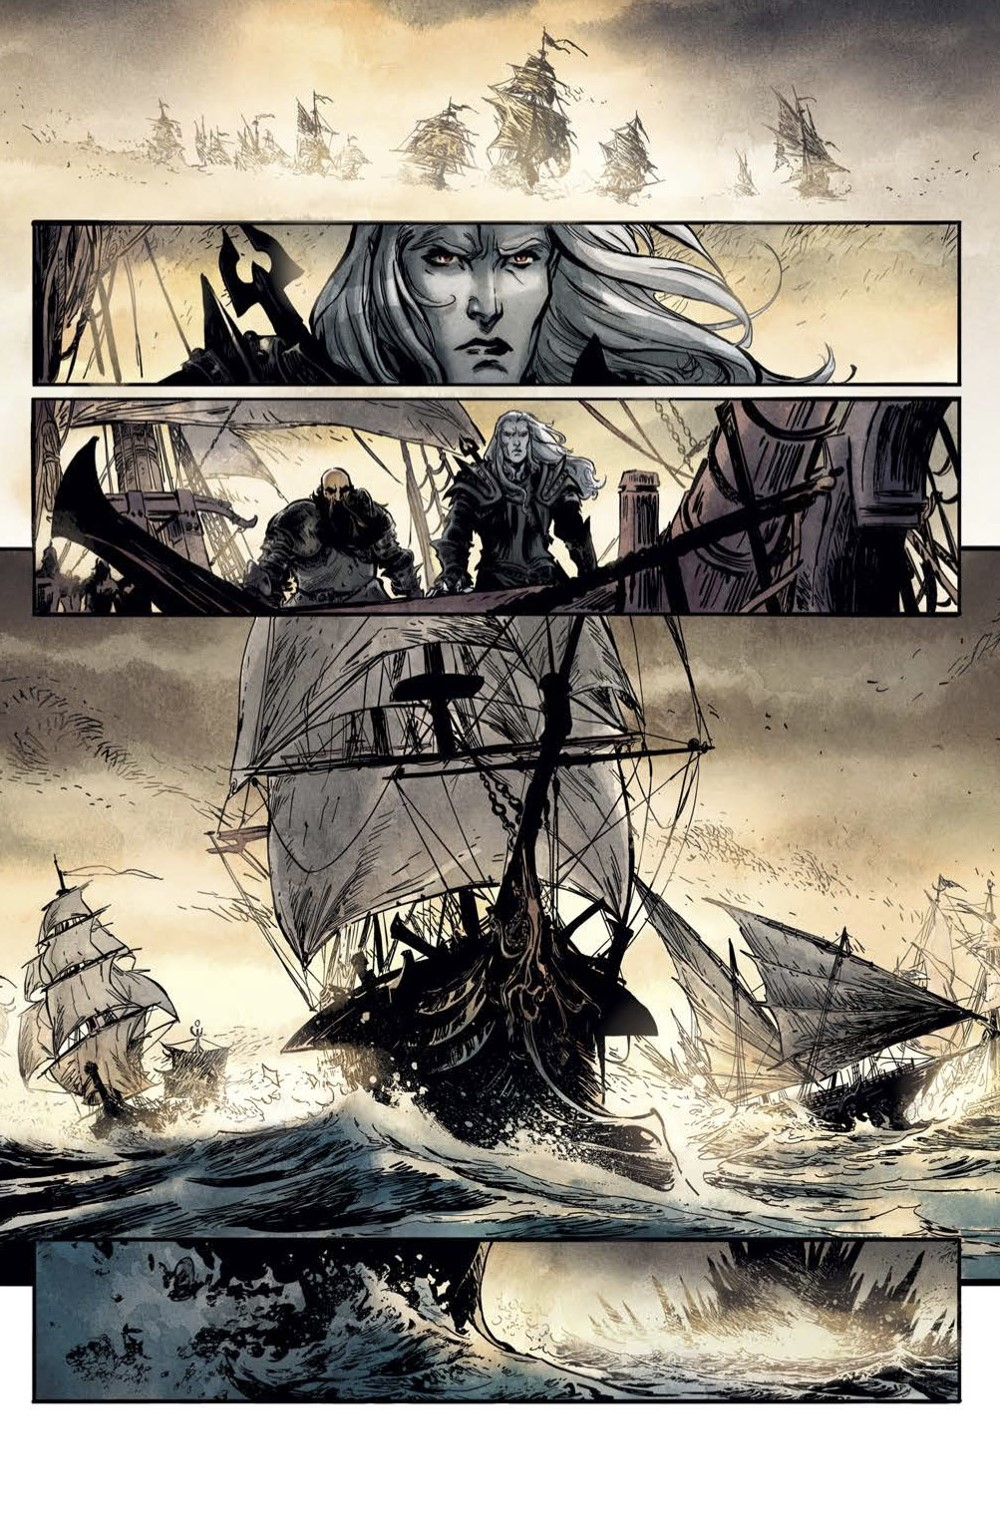 Elric-The-Deaming-City-2-Spread-1 ComicList Previews: ELRIC THE DREAMING CITY #2